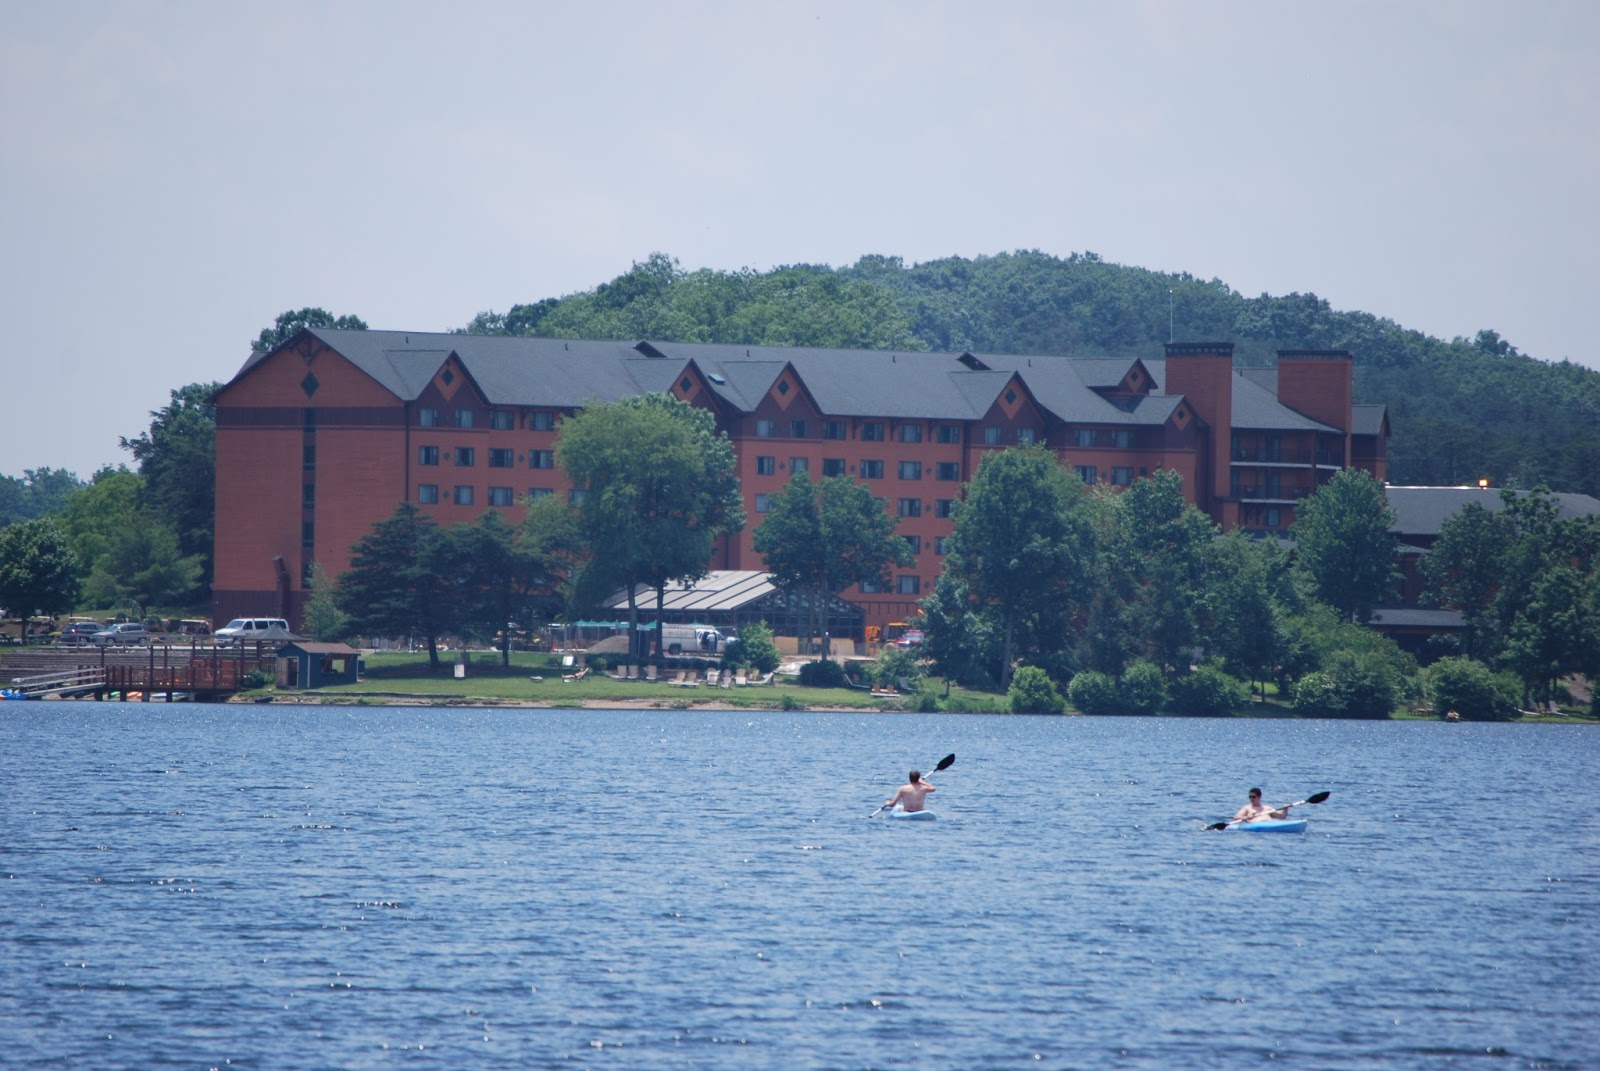 rocky gap Rocky gap casino & resort in flintstone on hotelscom and earn rewards nights collect 10 nights get 1 free read 318 genuine guest reviews for rocky gap casino & resort.